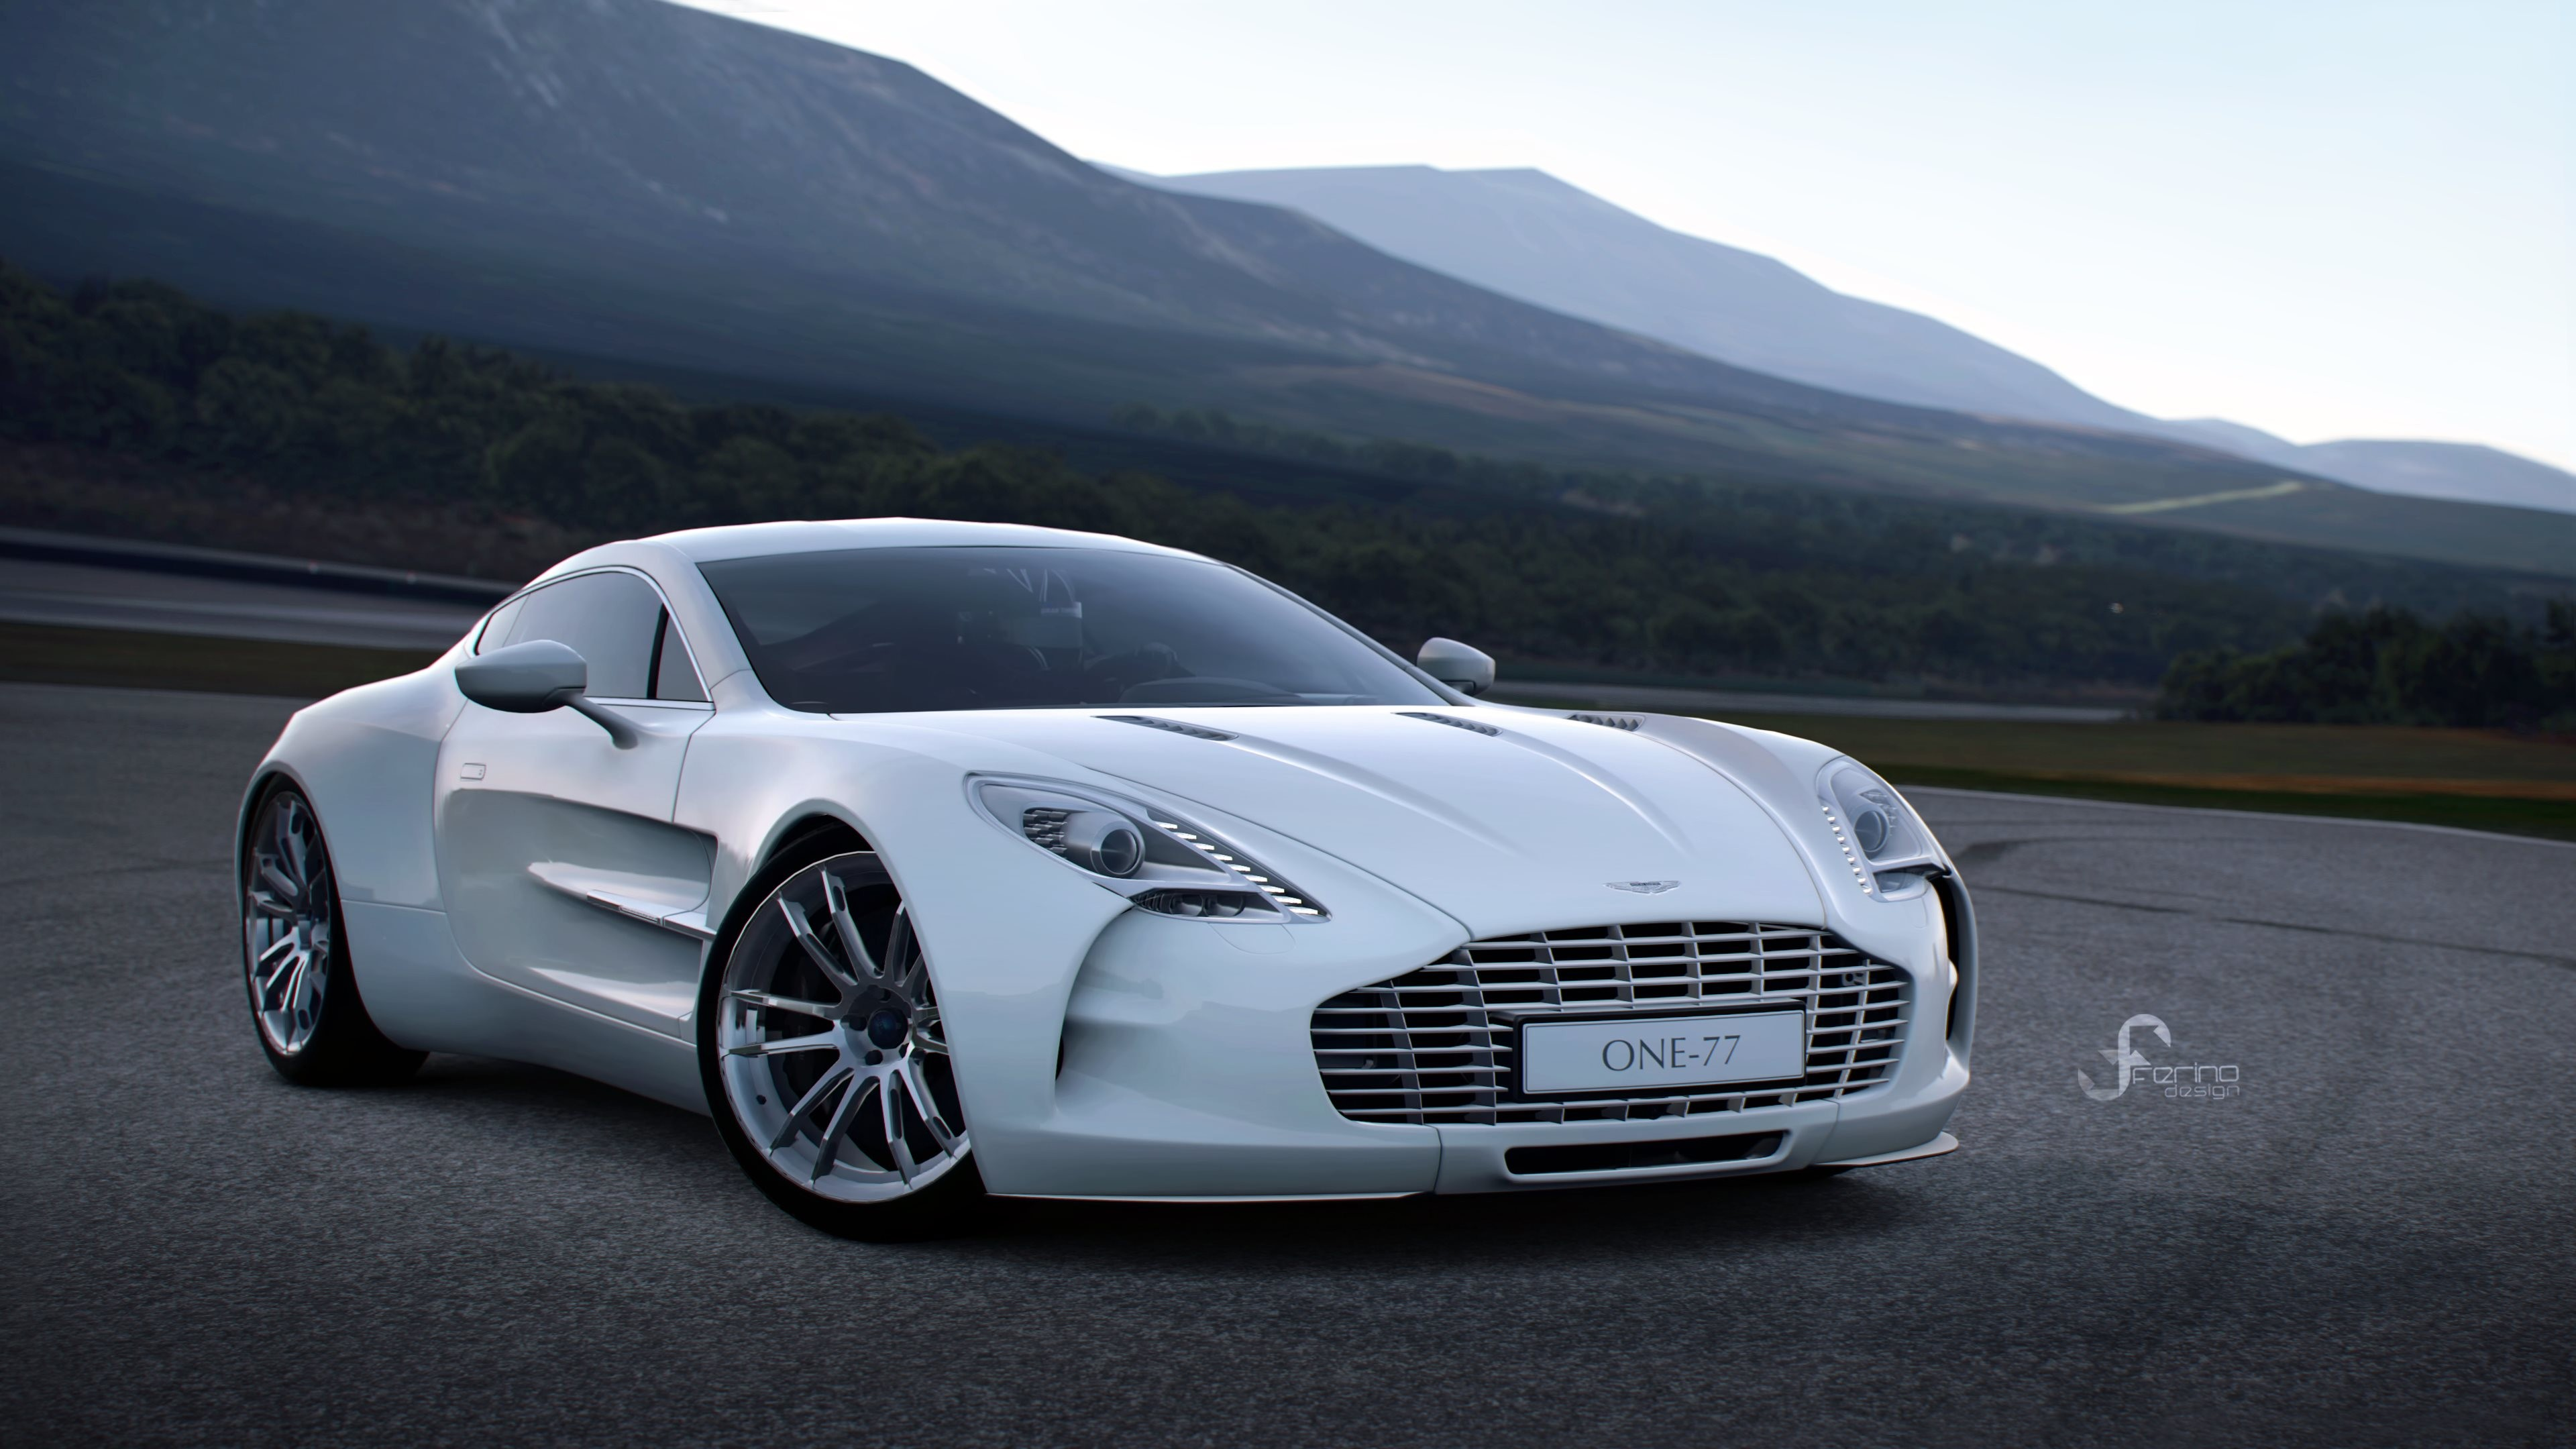 aston martin wallpaper hd (73+ images)